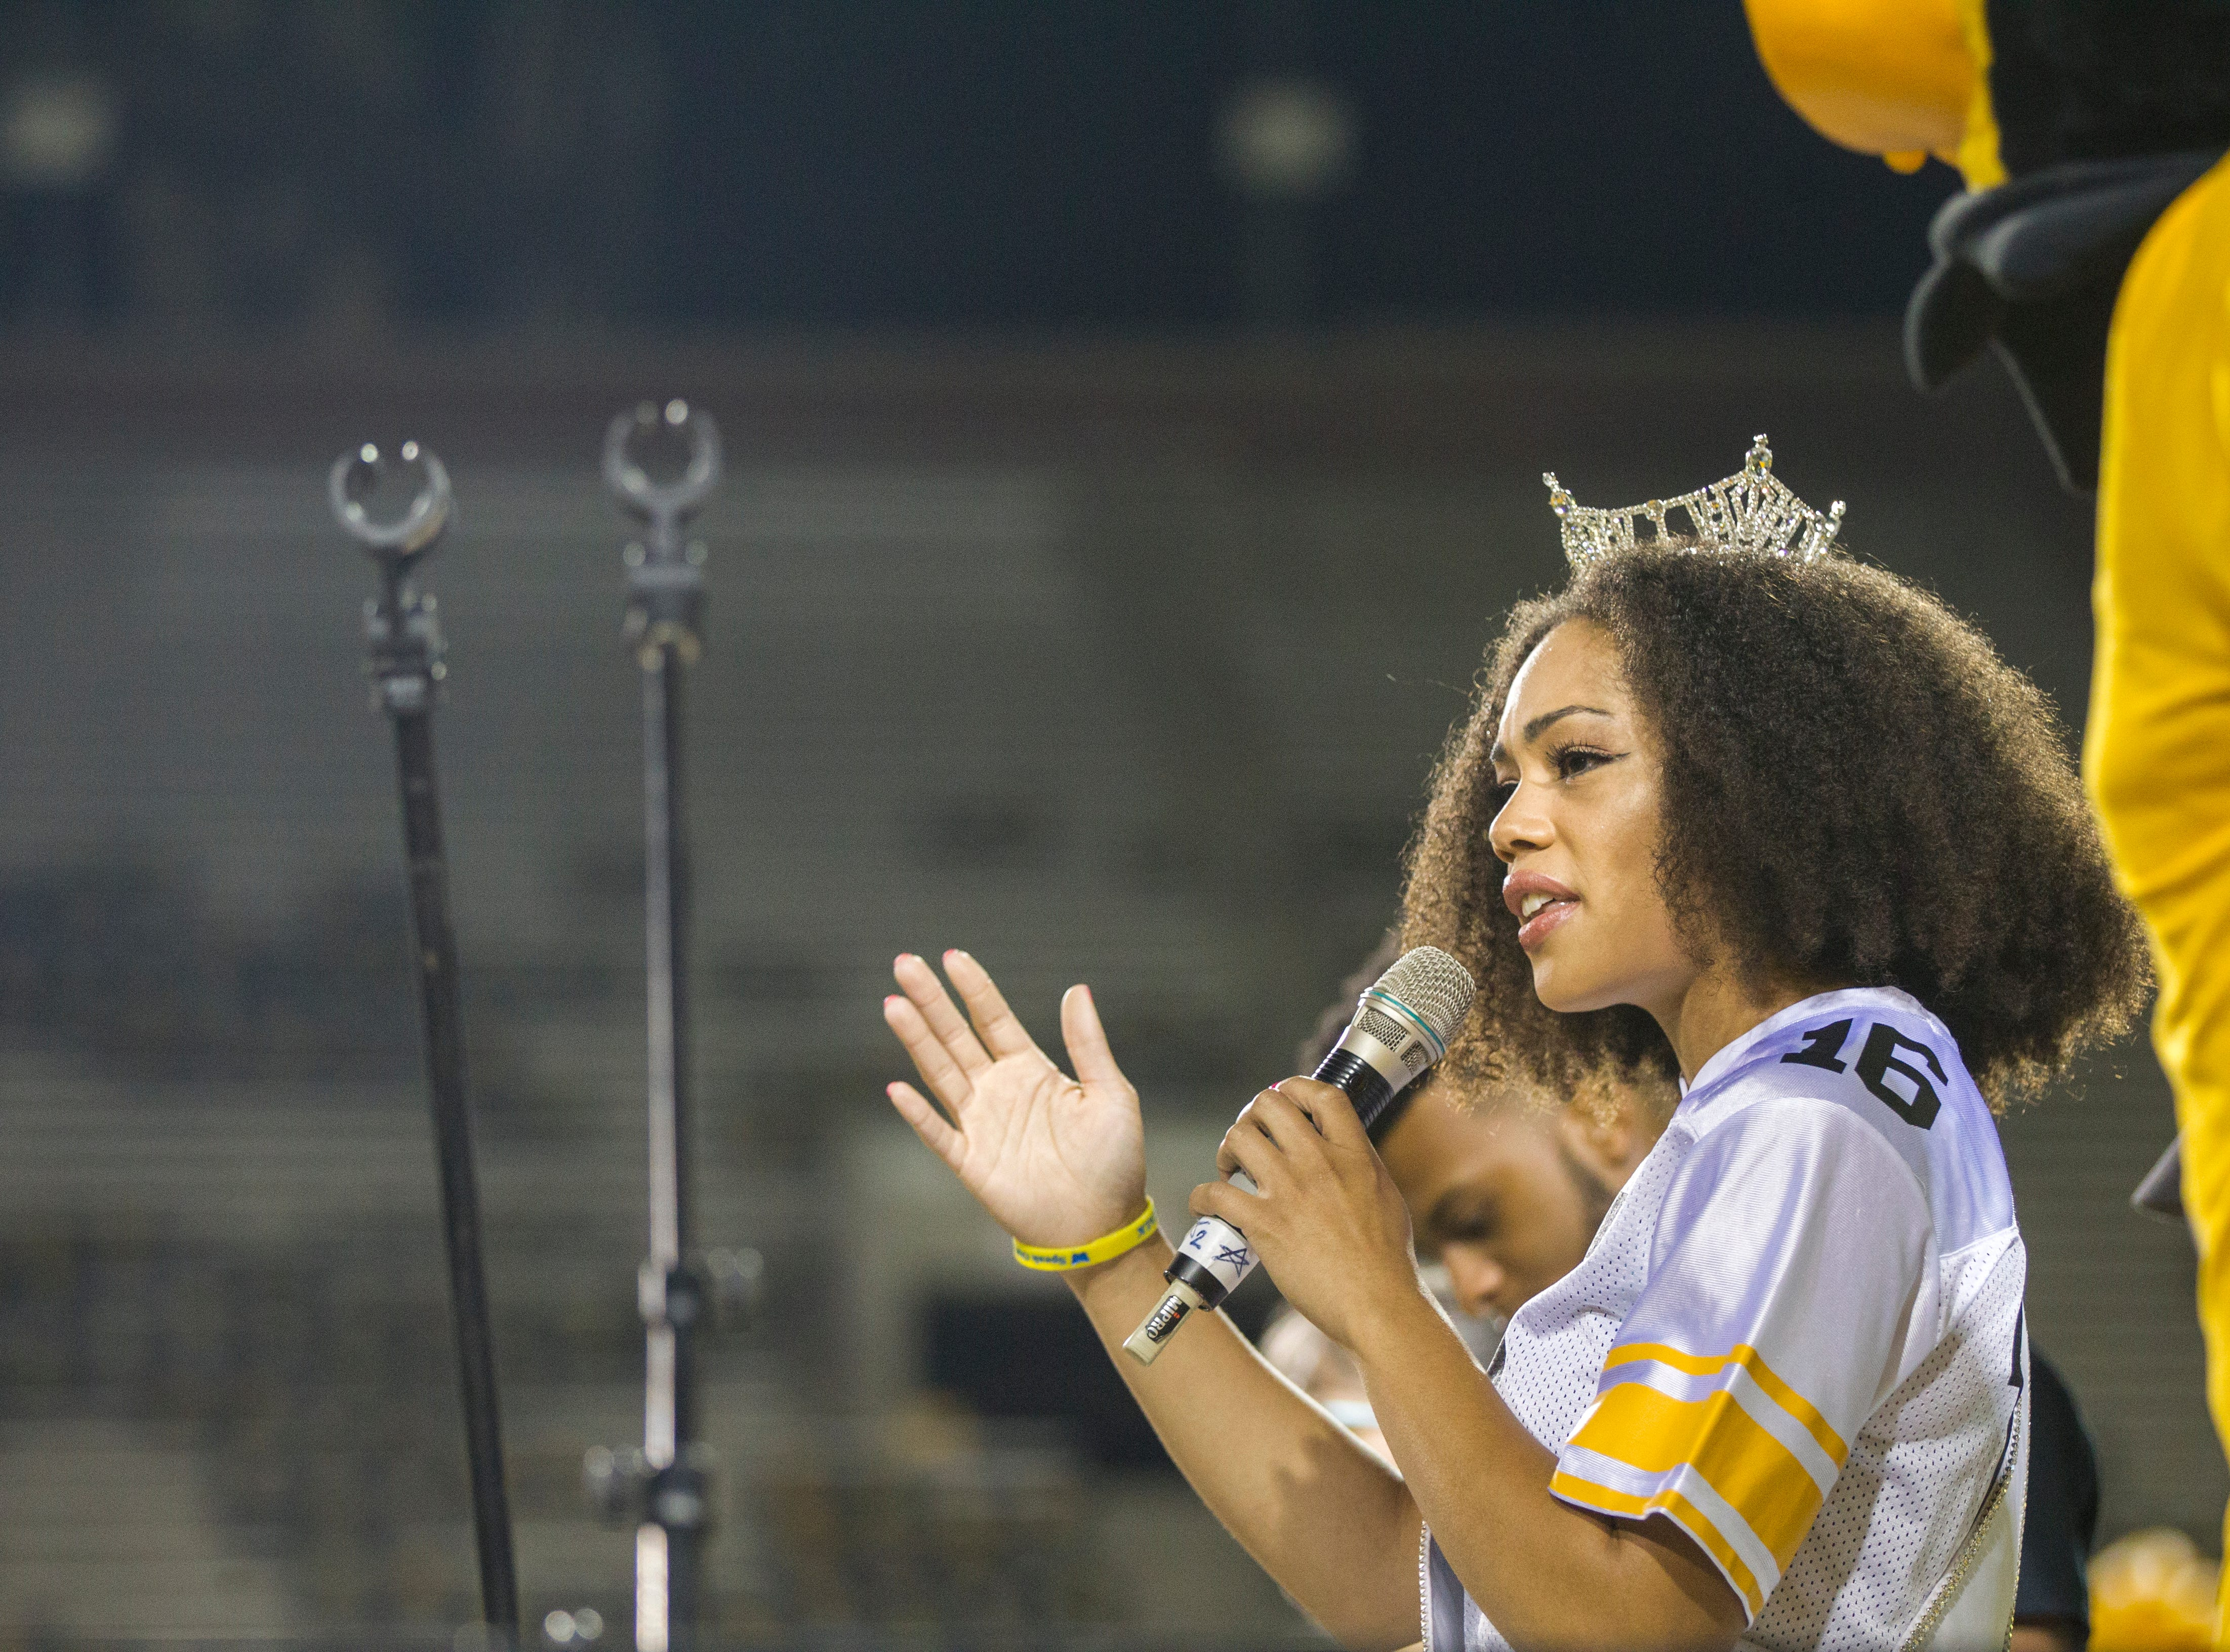 Mikhayla Hughes-Shaw, Miss Iowa 2018, speaks to University of Iowa students while they gather during an OnIowa event on Friday, Aug. 17, 2018, at Kinnick Stadium in Iowa City. The annual Kickoff at Kinnick allows new students a chance to walk on the field for their class photo.